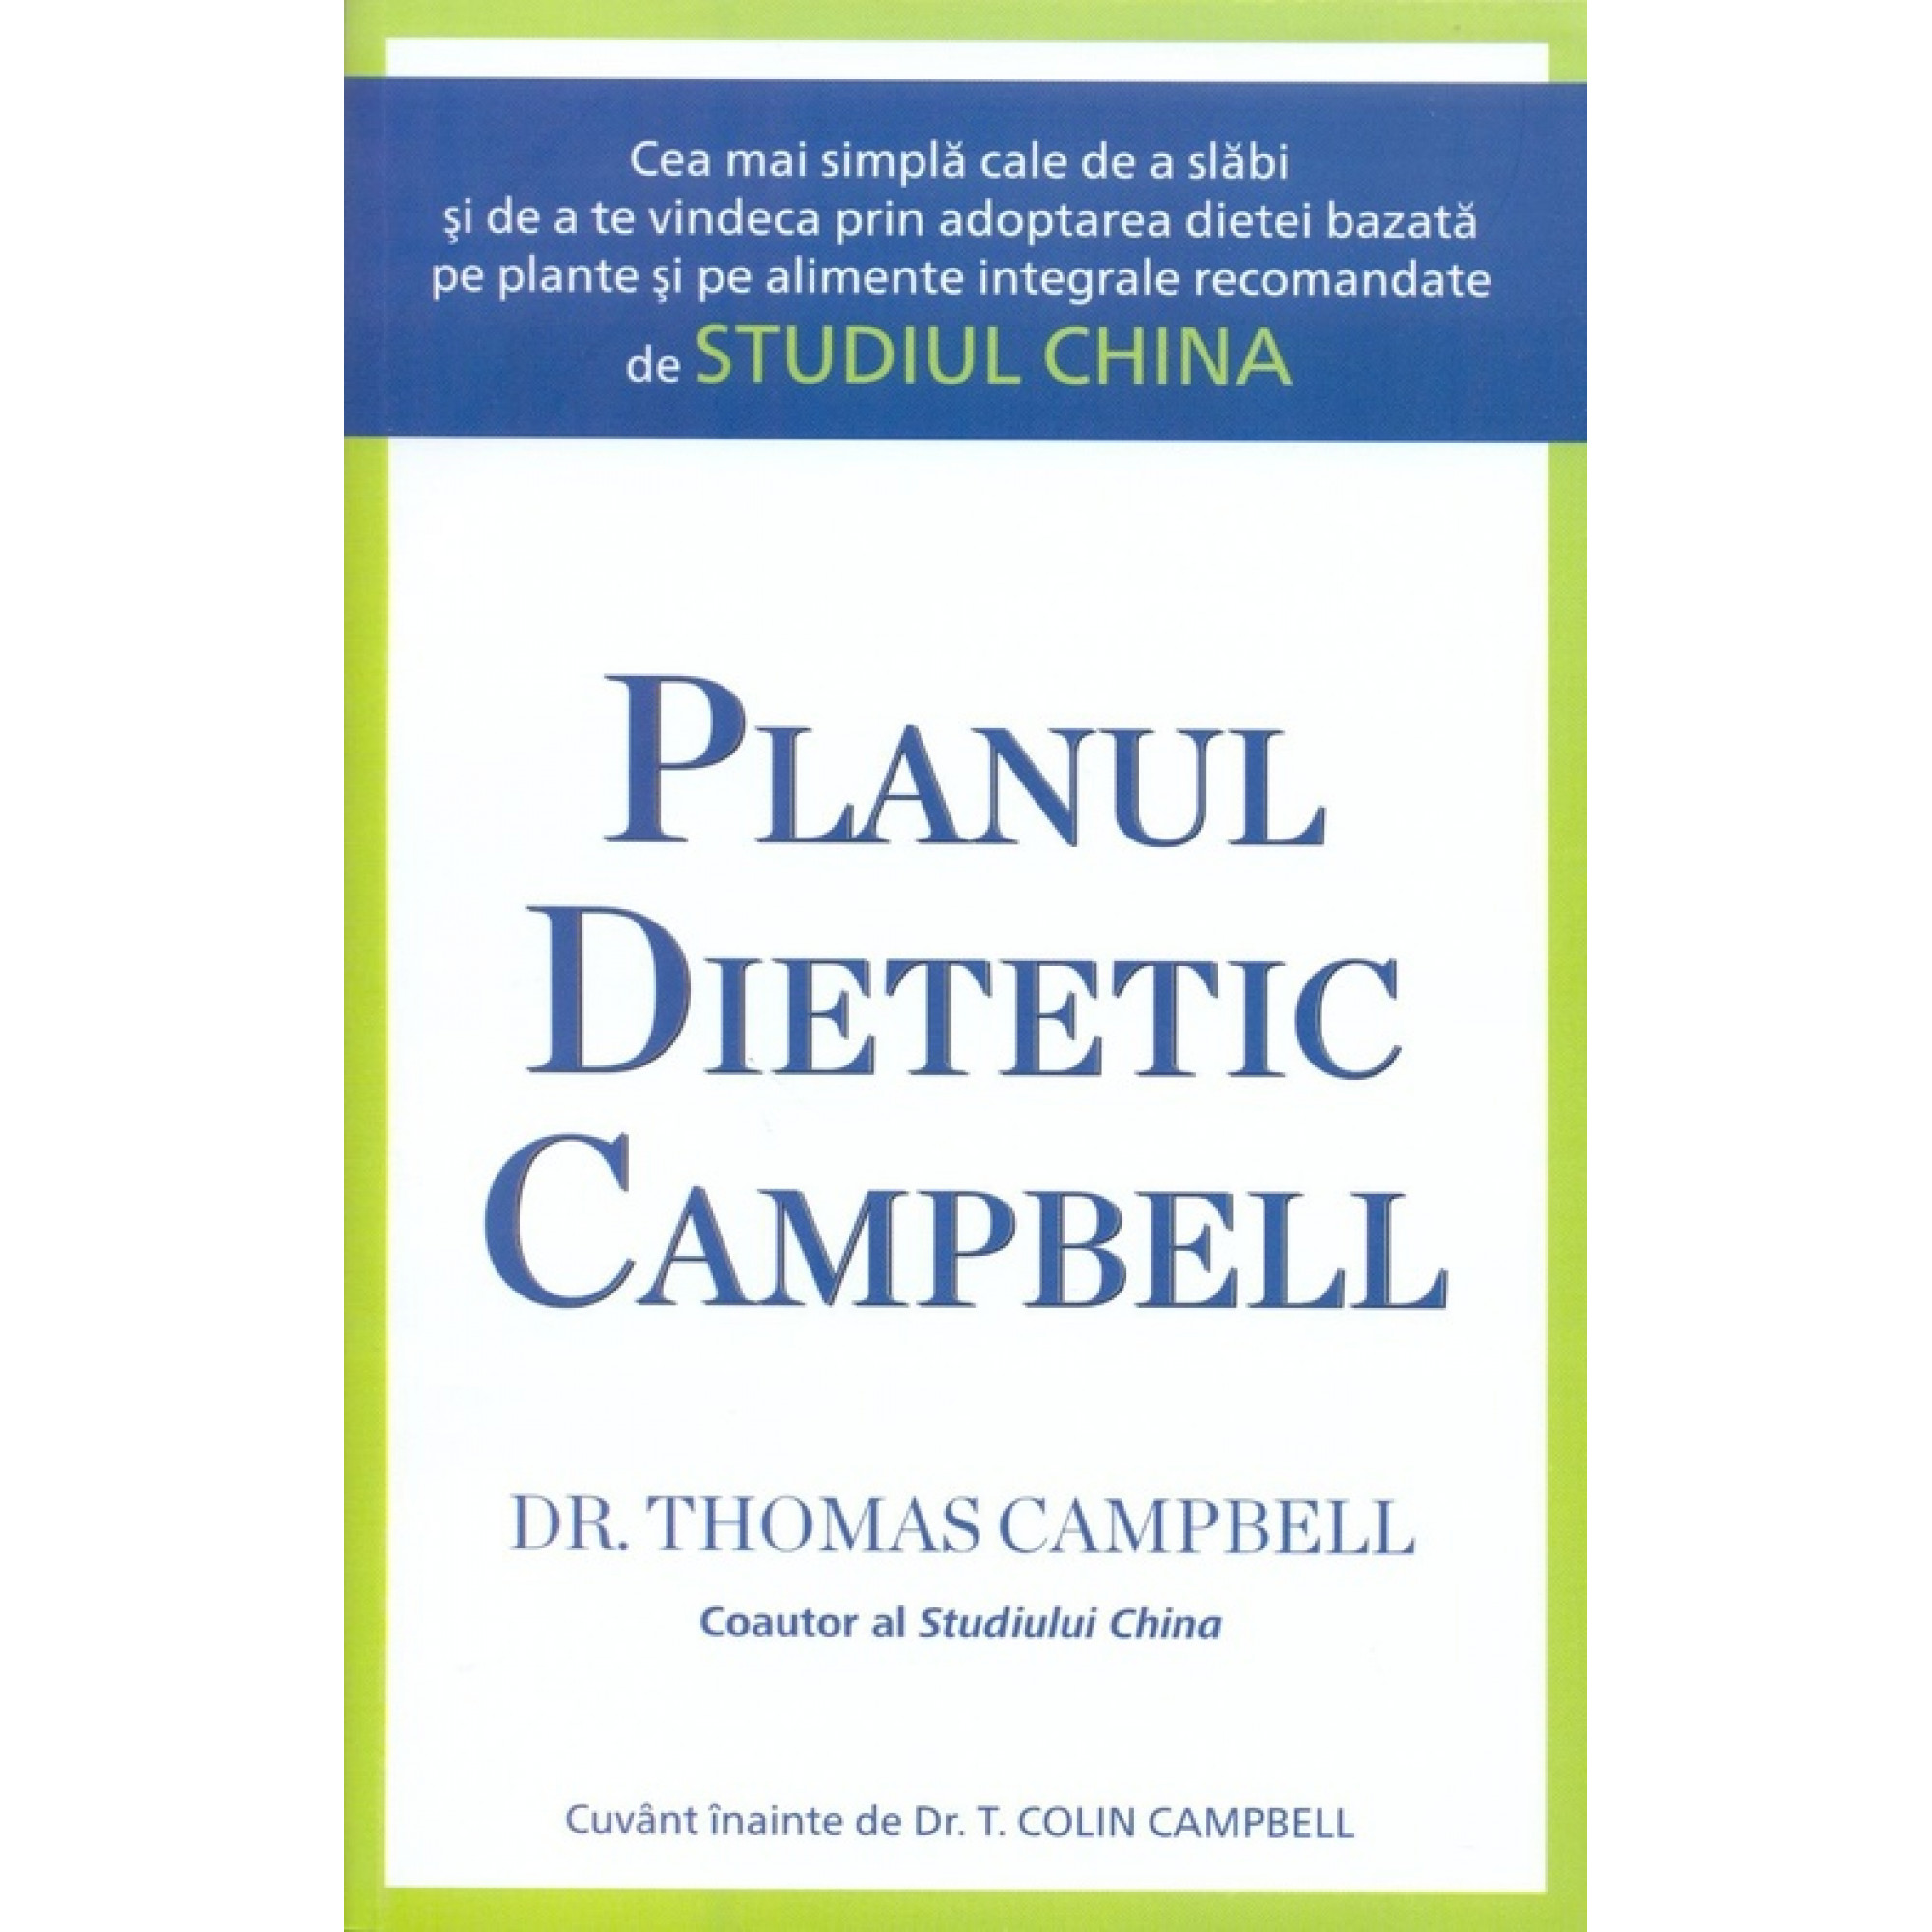 Planul dietetic Campbell; Thomas Campbell